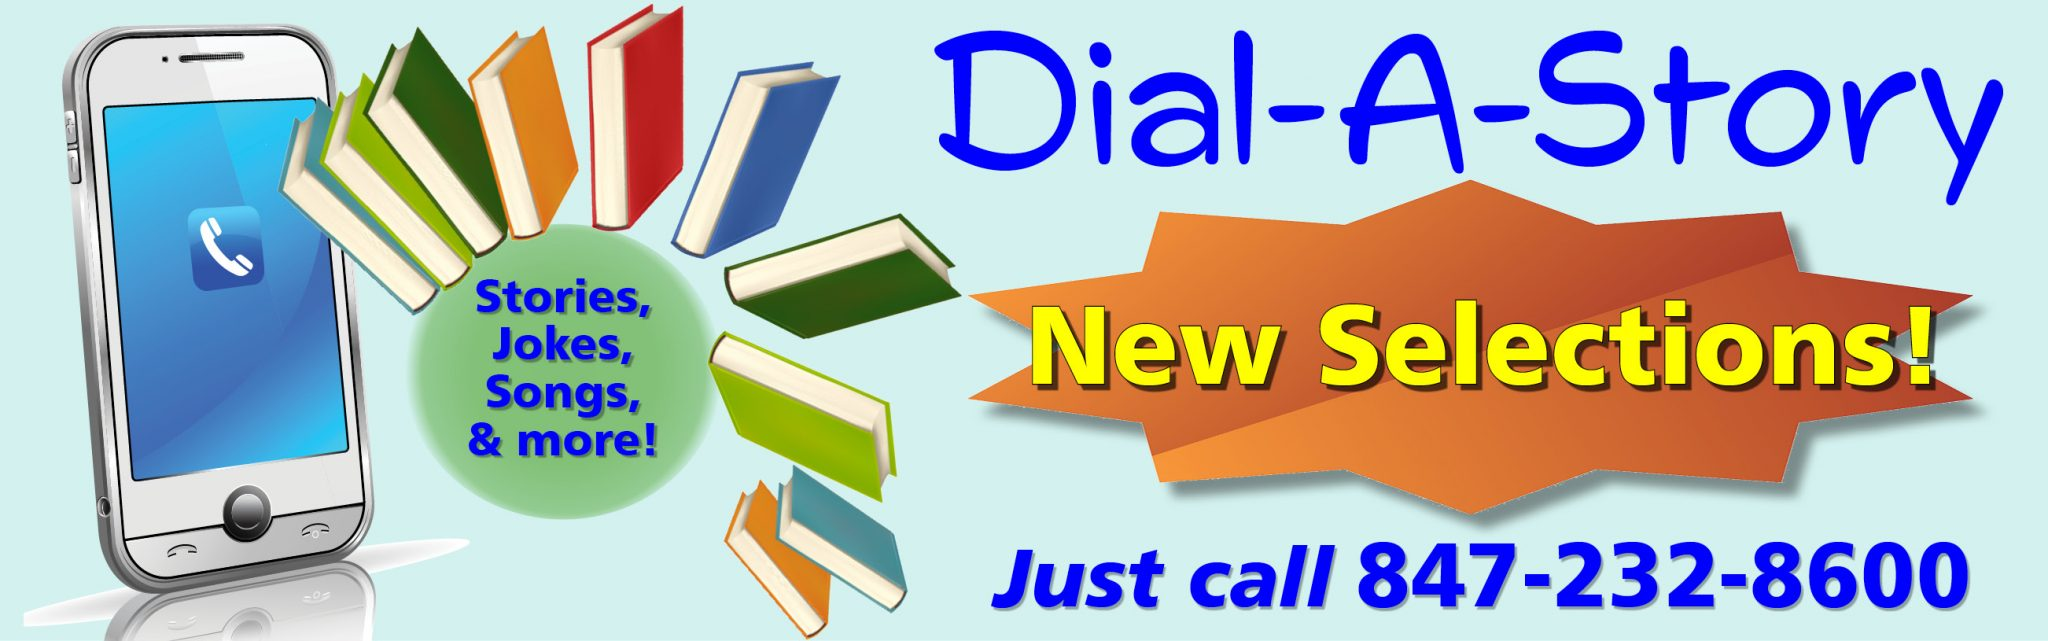 Dial-A-Story - Stories, jokes, songs, and more! Just call 847-232-8600.